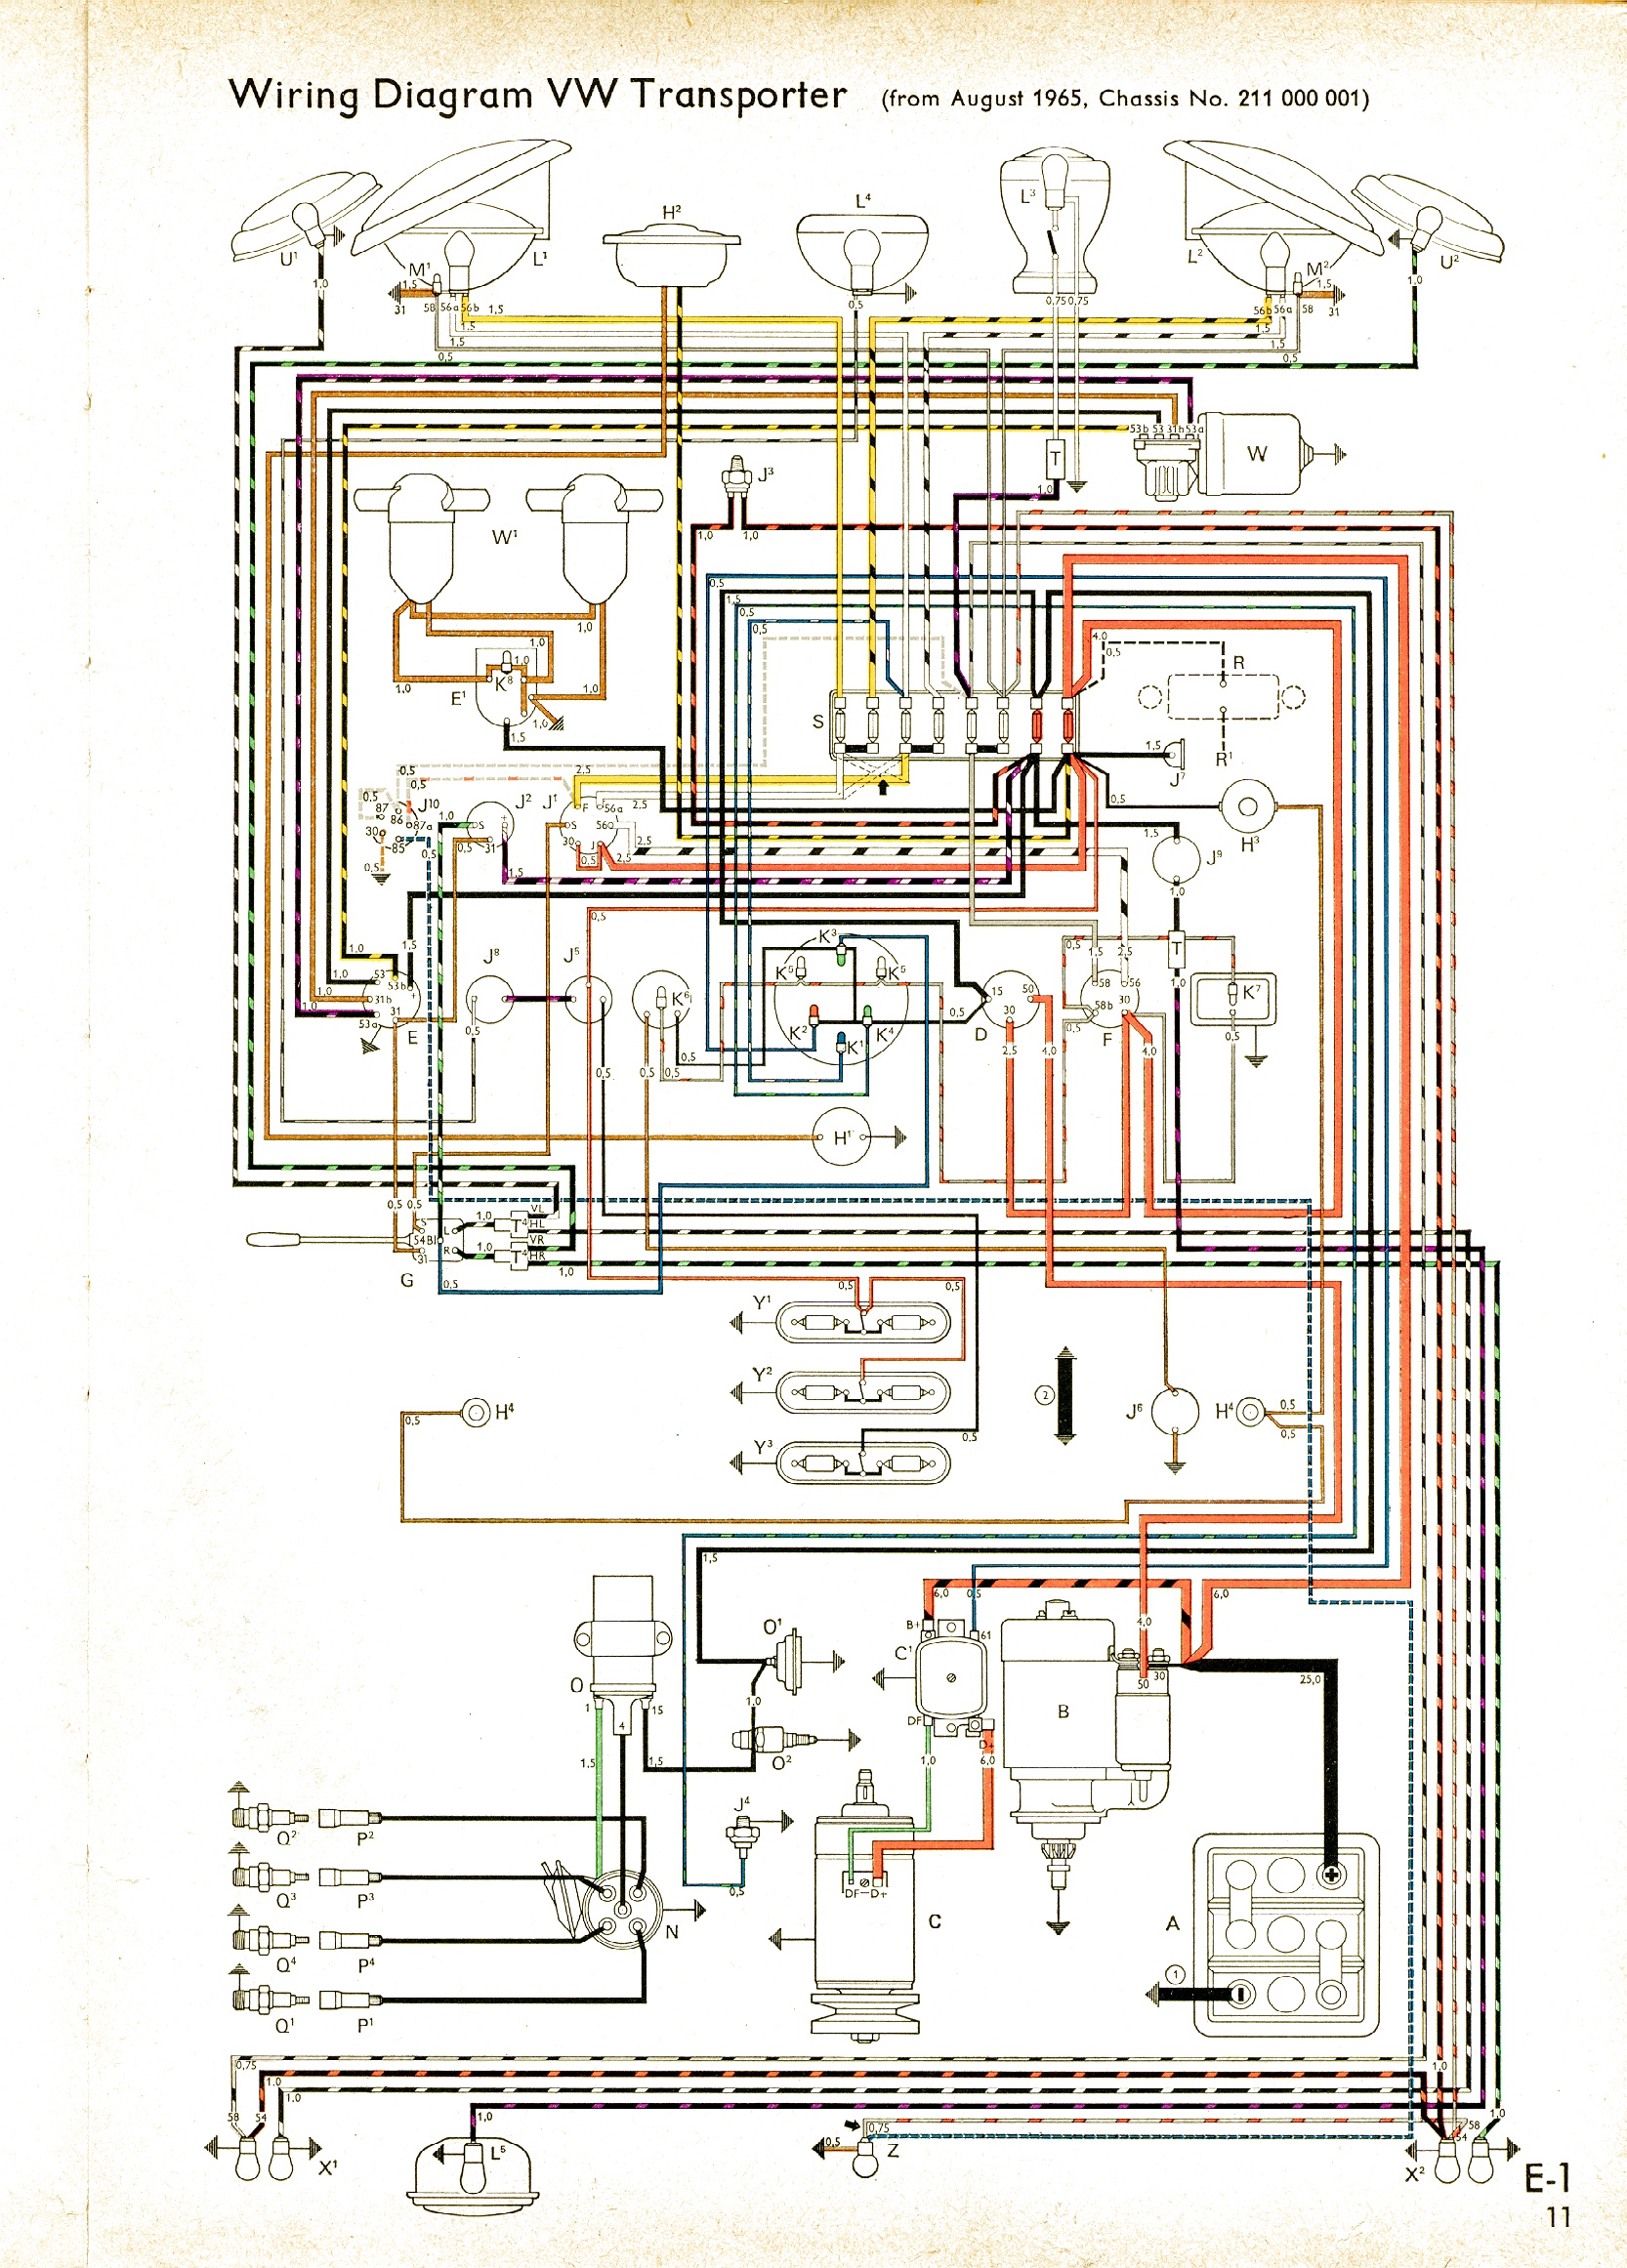 bus 65 vintagebus com vw bus (and other) wiring diagrams vw polo wiring diagram download at aneh.co